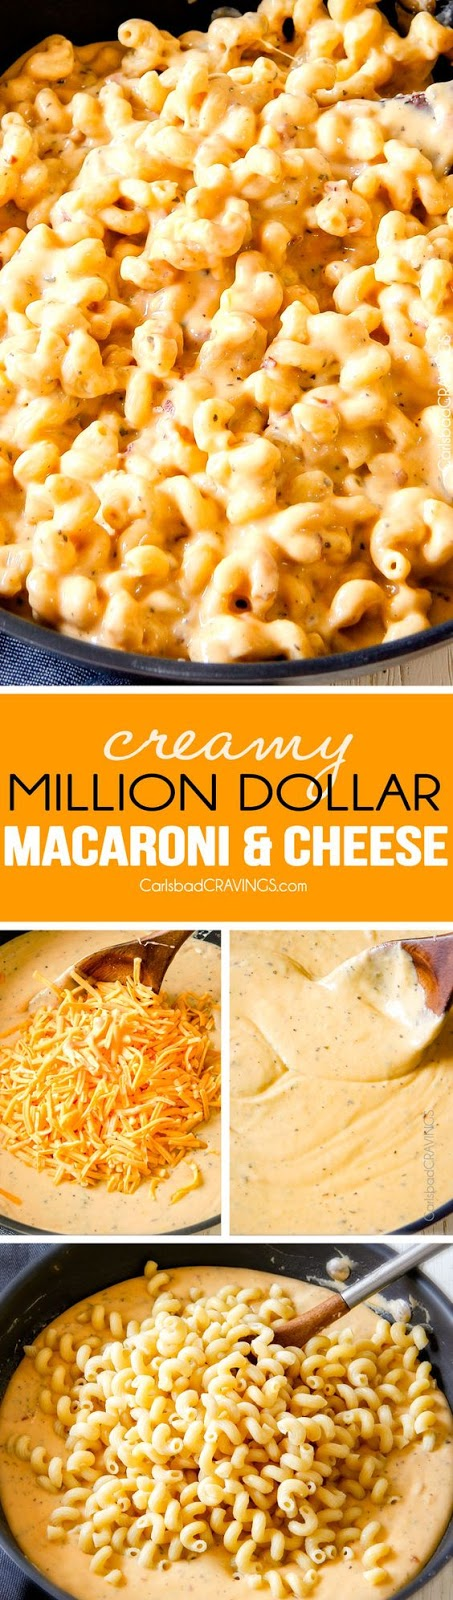 ★★★★☆ 7561 ratings | MILLION DOLLAR MACARONI AND CHEESE CASSEROLE   #HEALTHYFOOD #EASYRECIPES #DINNER #LAUCH #DELICIOUS #EASY #HOLIDAYS #RECIPE #DESSERTS #SPECIALDIET #WORLDCUISINE #CAKE #APPETIZERS #HEALTHYRECIPES #DRINKS #COOKINGMETHOD #ITALIANRECIPES #MEAT #VEGANRECIPES #COOKIES #PASTA #FRUIT #SALAD #SOUPAPPETIZERS #NONALCOHOLICDRINKS #MEALPLANNING #VEGETABLES #SOUP #PASTRY #CHOCOLATE #DAIRY #ALCOHOLICDRINKS #BULGURSALAD #BAKING #SNACKS #BEEFRECIPES #MEATAPPETIZERS #MEXICANRECIPES #BREAD #ASIANRECIPES #SEAFOODAPPETIZERS #MUFFINS #BREAKFASTANDBRUNCH #CONDIMENTS #CUPCAKES #CHEESE #CHICKENRECIPES #PIE #COFFEE #NOBAKEDESSERTS #HEALTHYSNACKS #SEAFOOD #GRAIN #LUNCHESDINNERS #MEXICAN #QUICKBREAD #LIQUOR